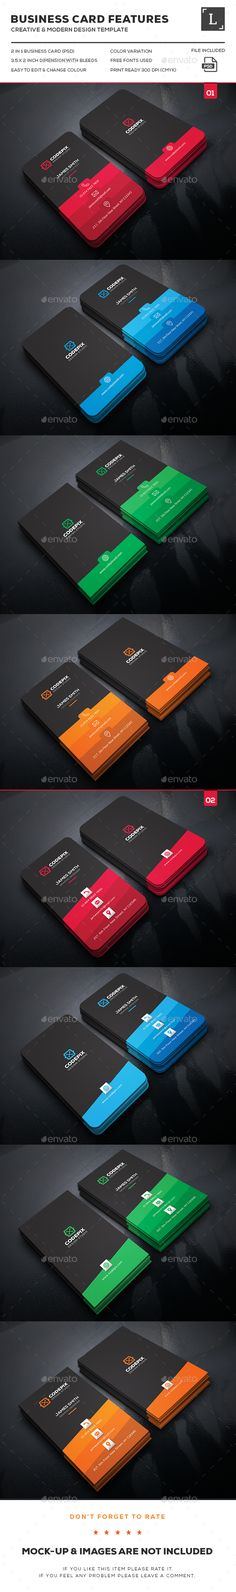 Shade Business Card Bundle — Photoshop PSD #designer #green • Available here → https://graphicriver.net/item/shade-business-card-bundle-/16345021?ref=pxcr